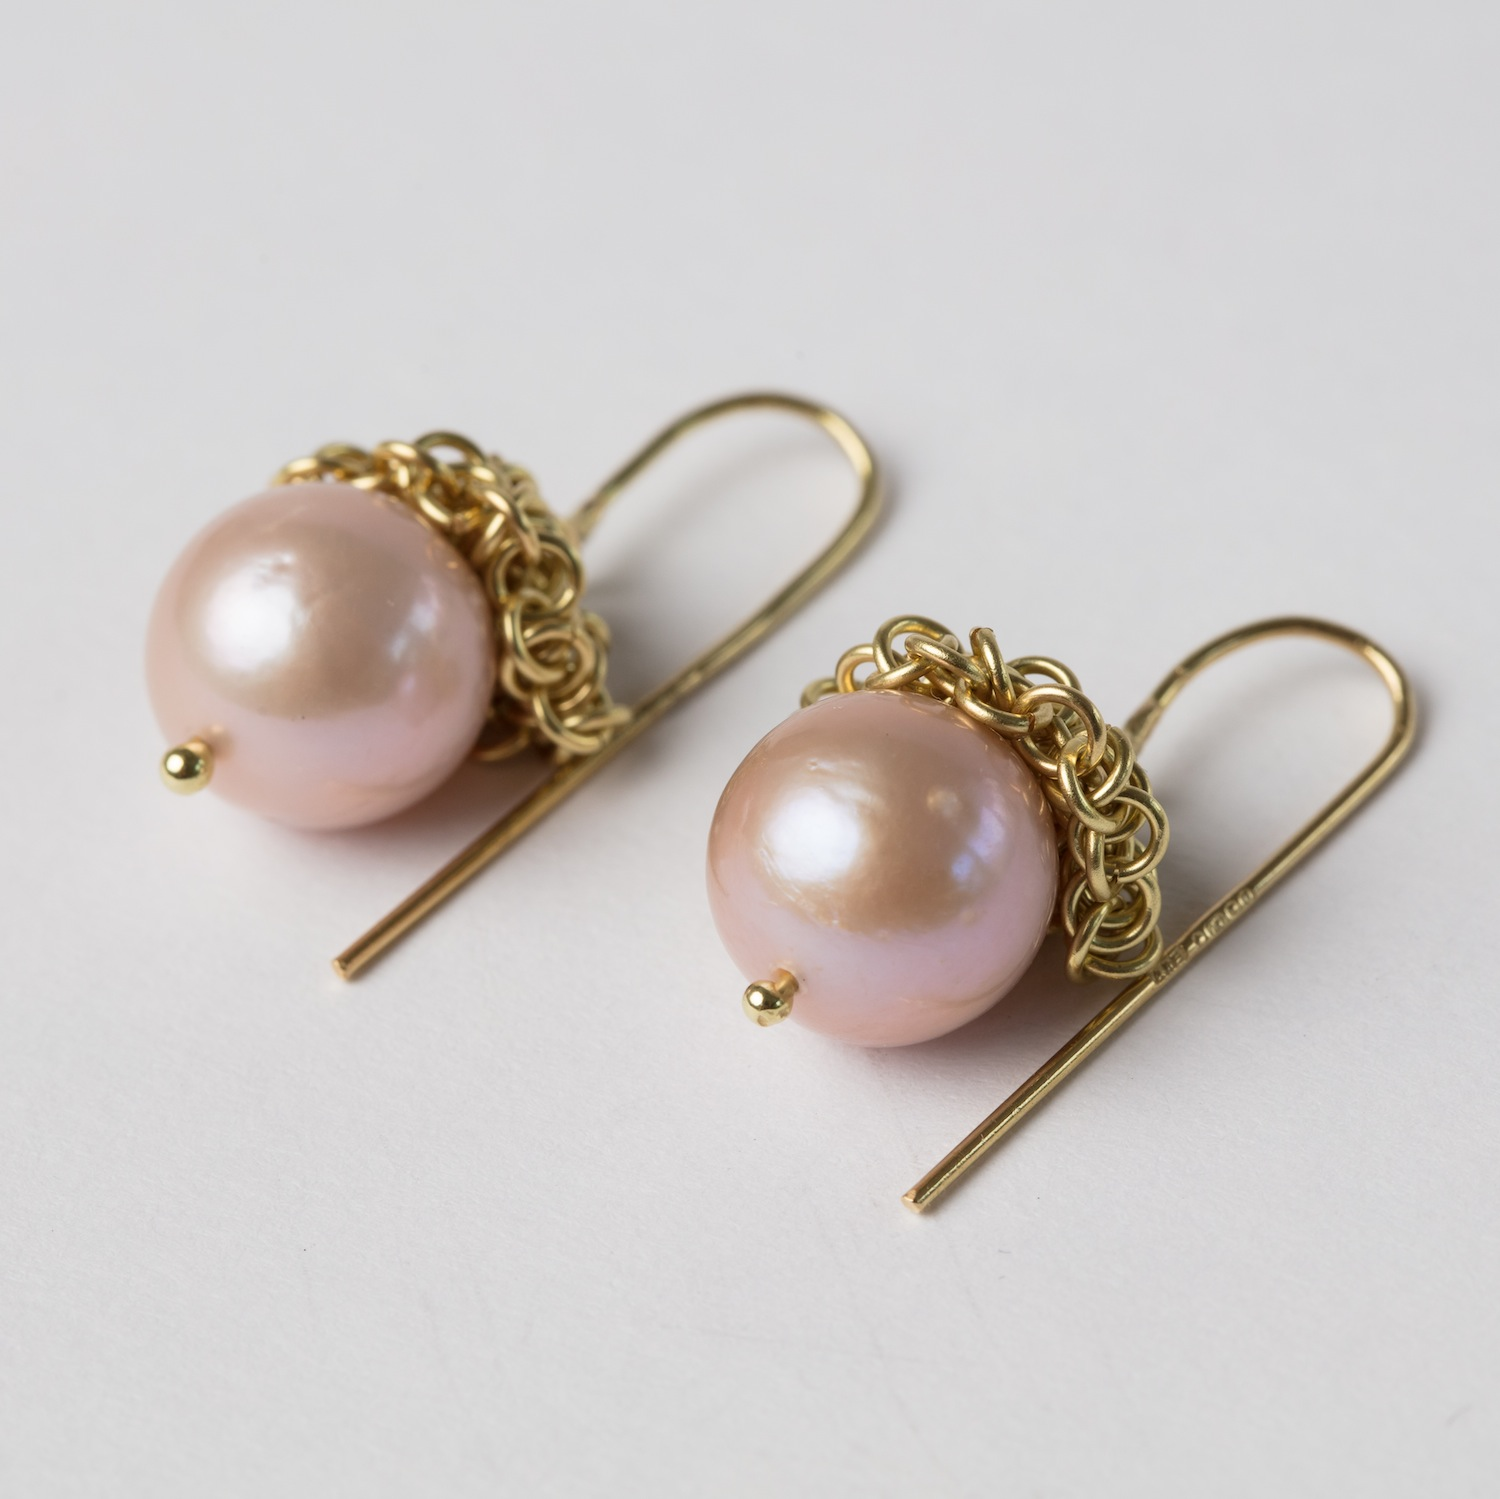 Pearl and 18ct Gold Acorn Earrings